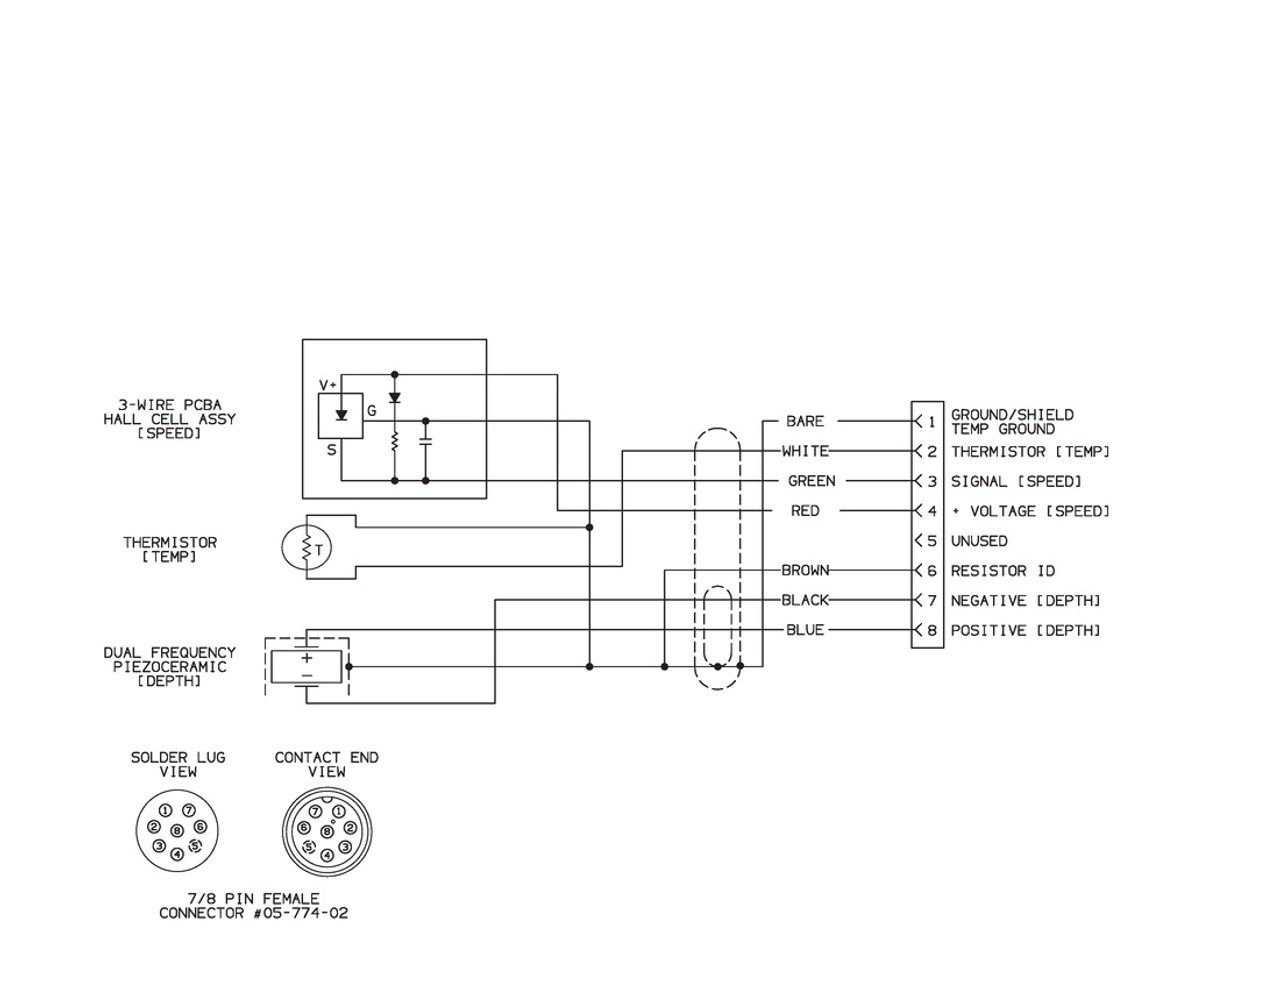 hight resolution of wrg 2785 thermistor wiring diagram dualdepth speed u0026 temperature p66 600w transducers with